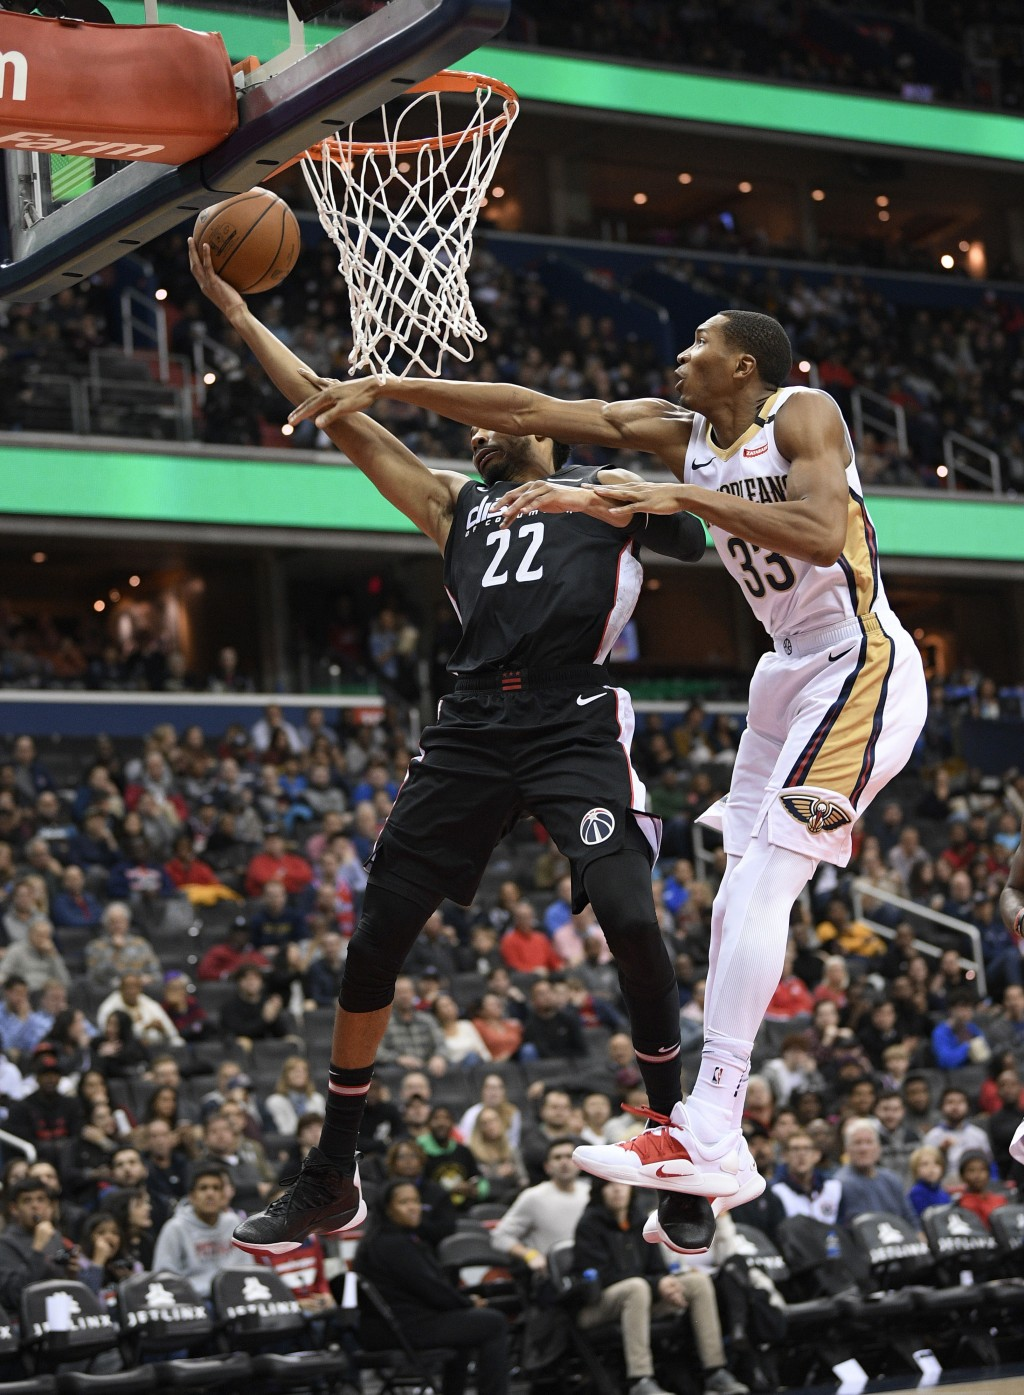 Washington Wizards forward Otto Porter Jr. (22) is fouled by New Orleans Pelicans forward Wesley Johnson (33) during the second half of an NBA basketb...